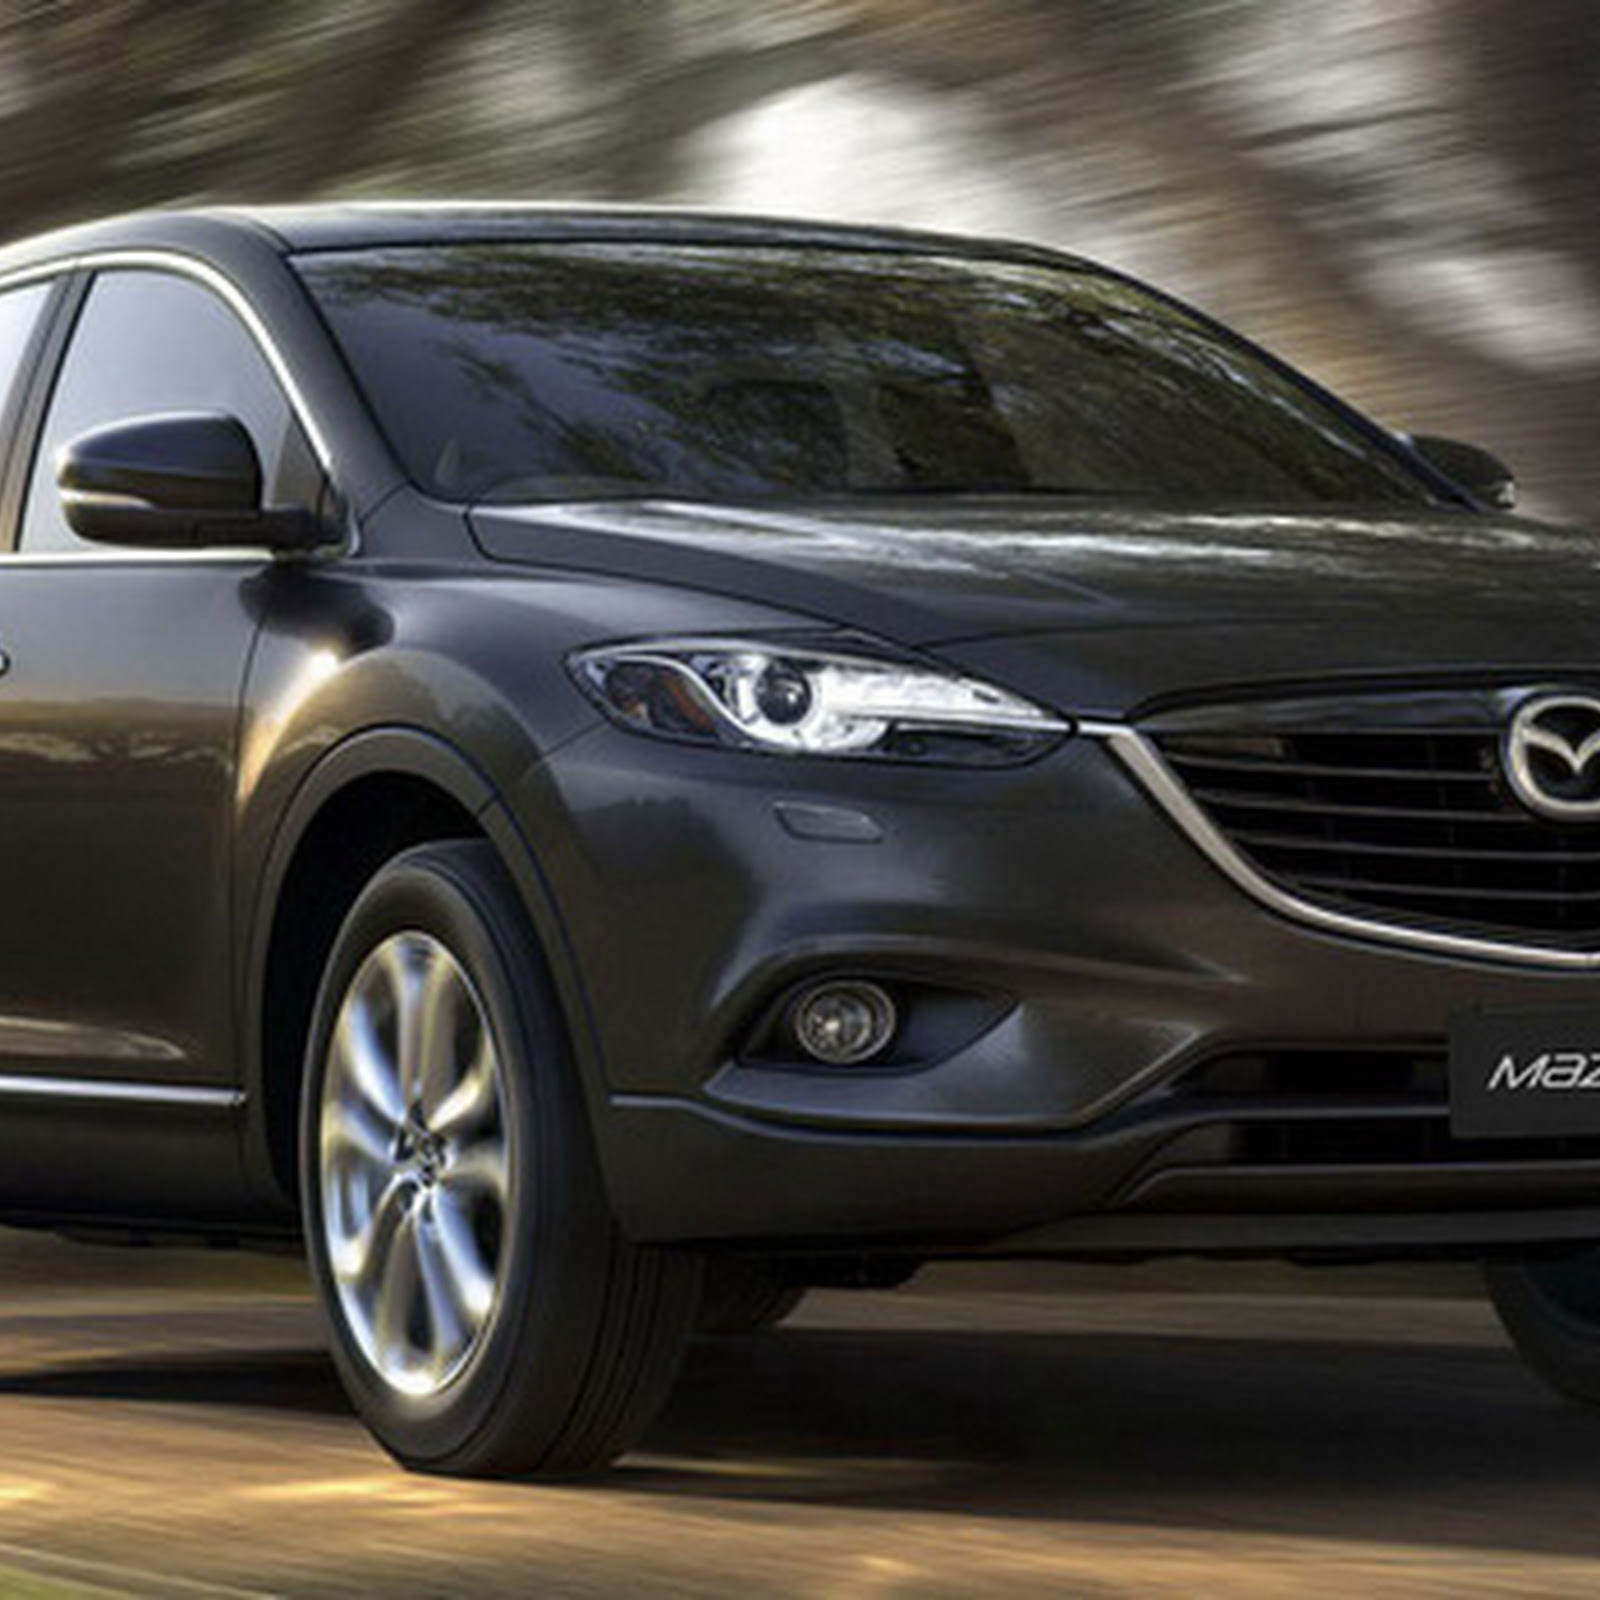 Mazda To Boost Capacity At Mexican Plant To 230,000 Units